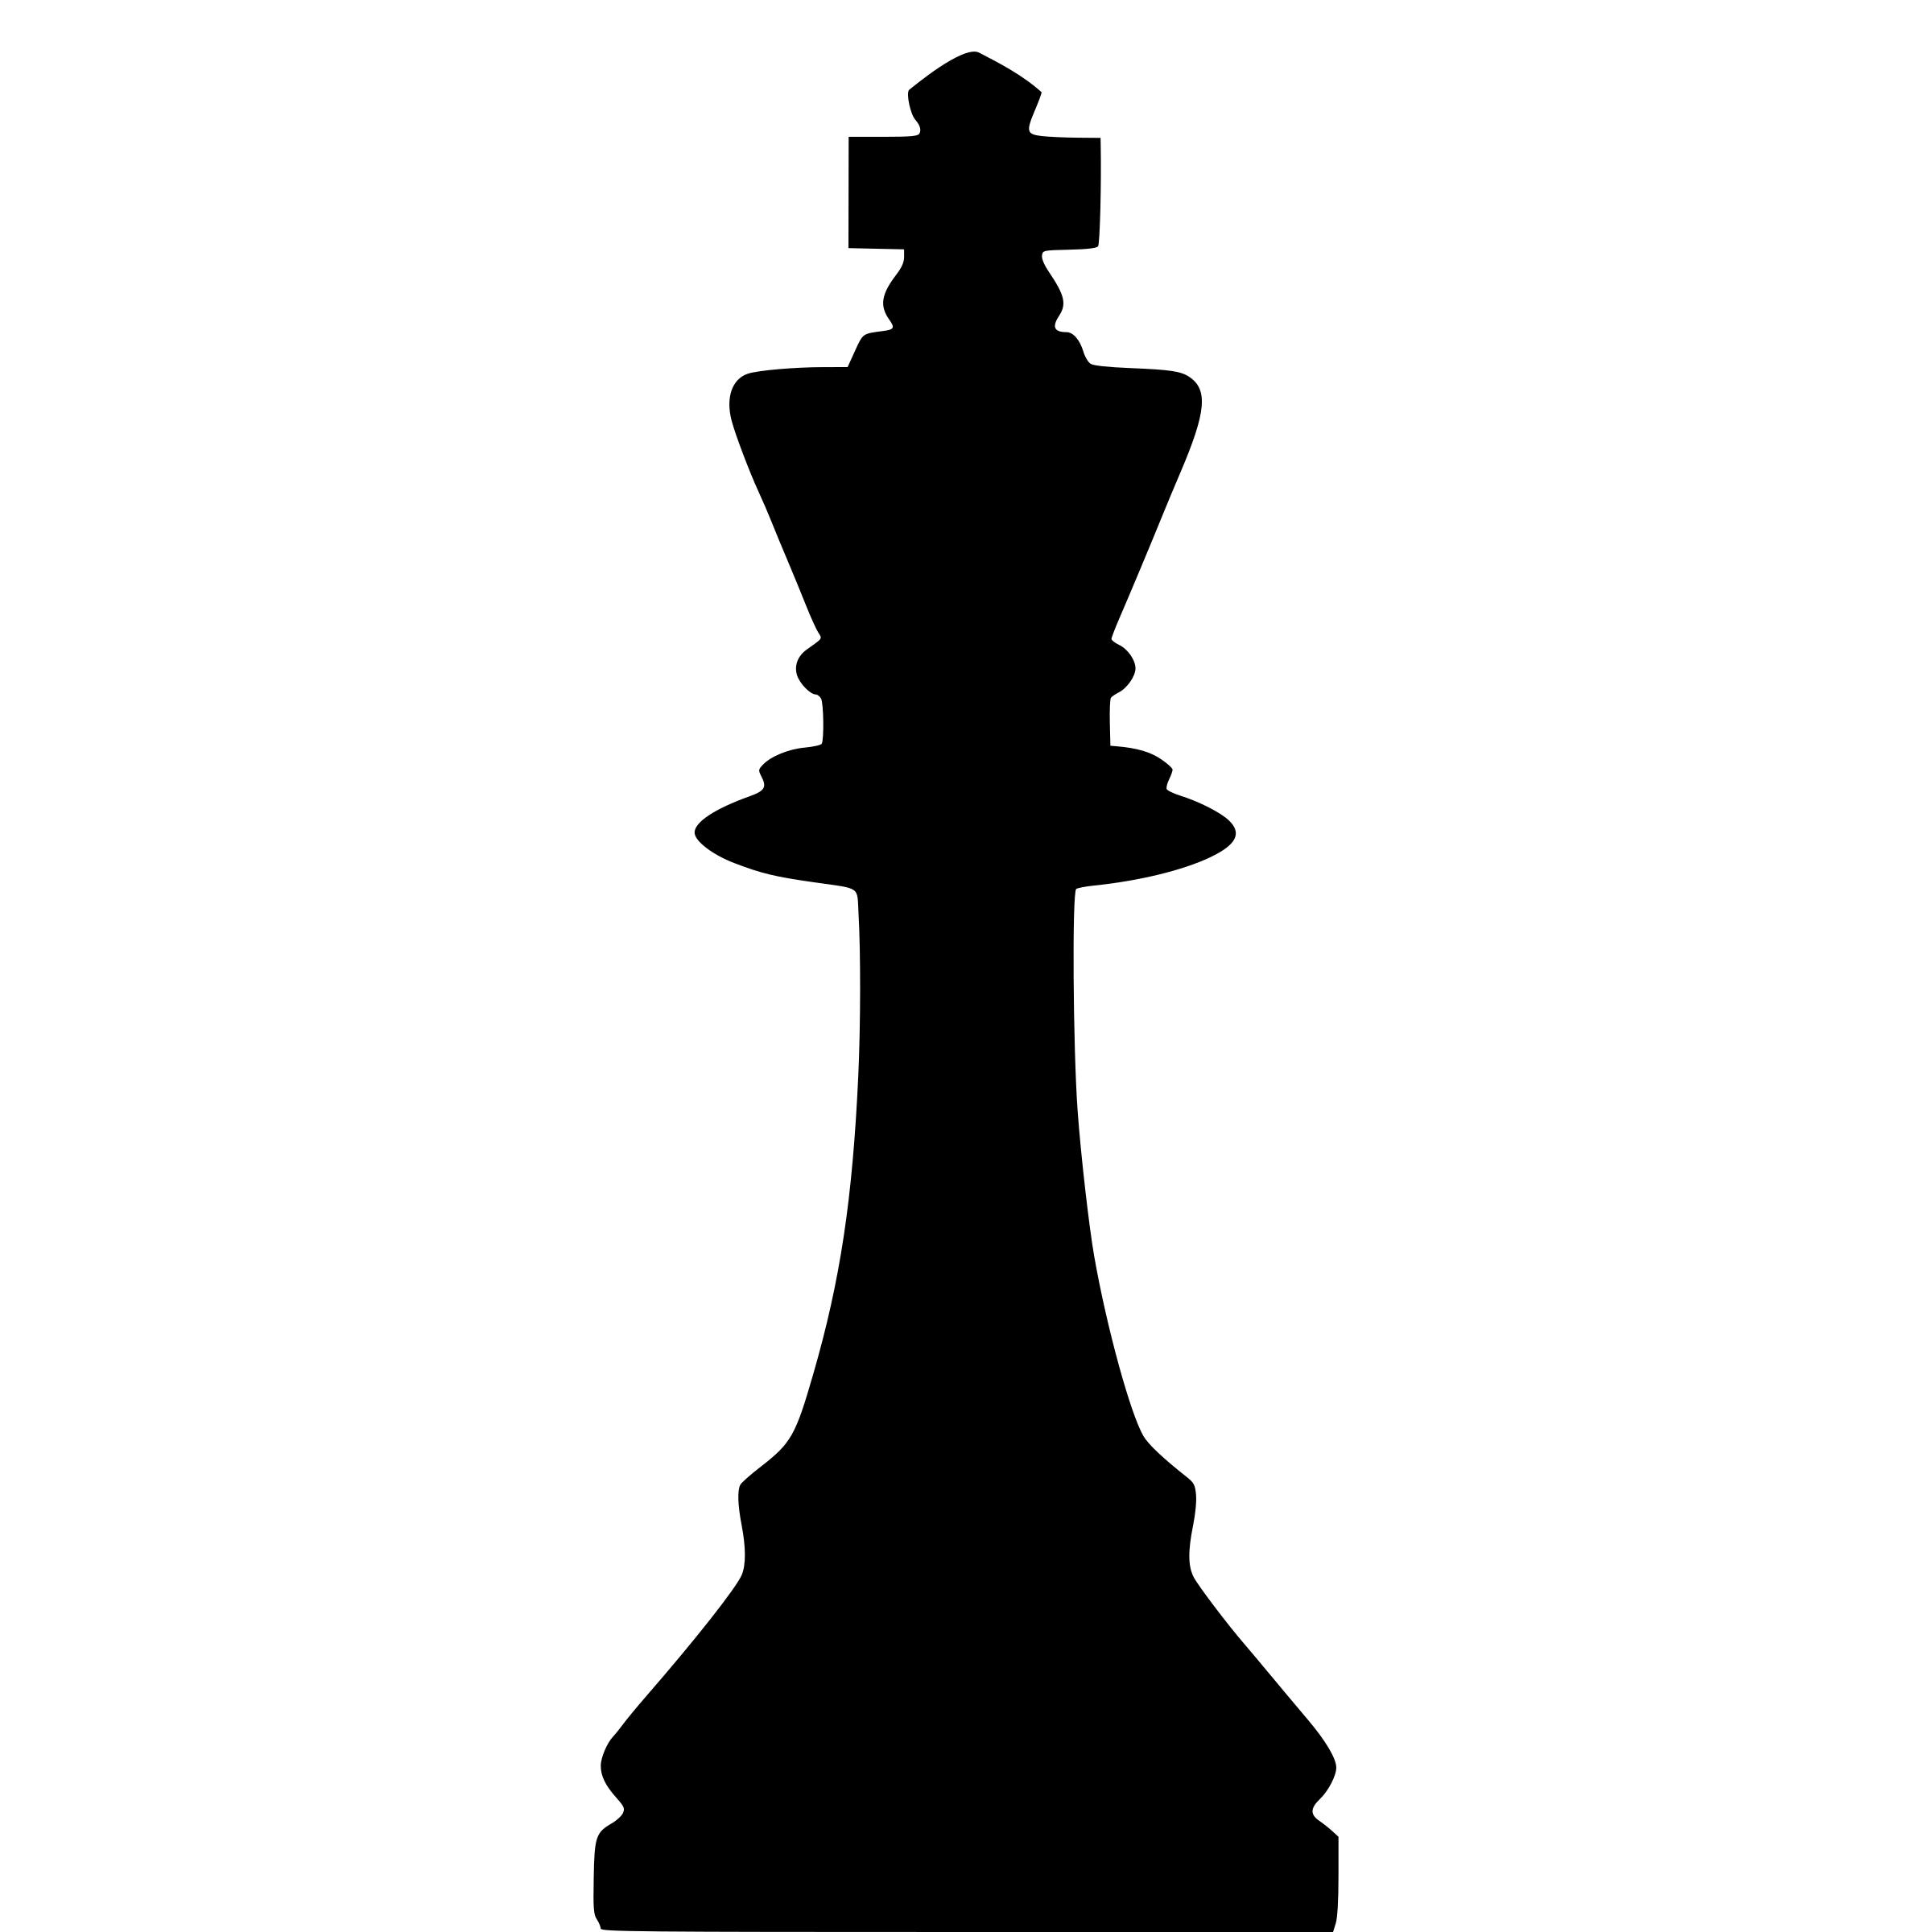 2400x2400 Silhouette Staunton Chess Piece King Rey Icons Png